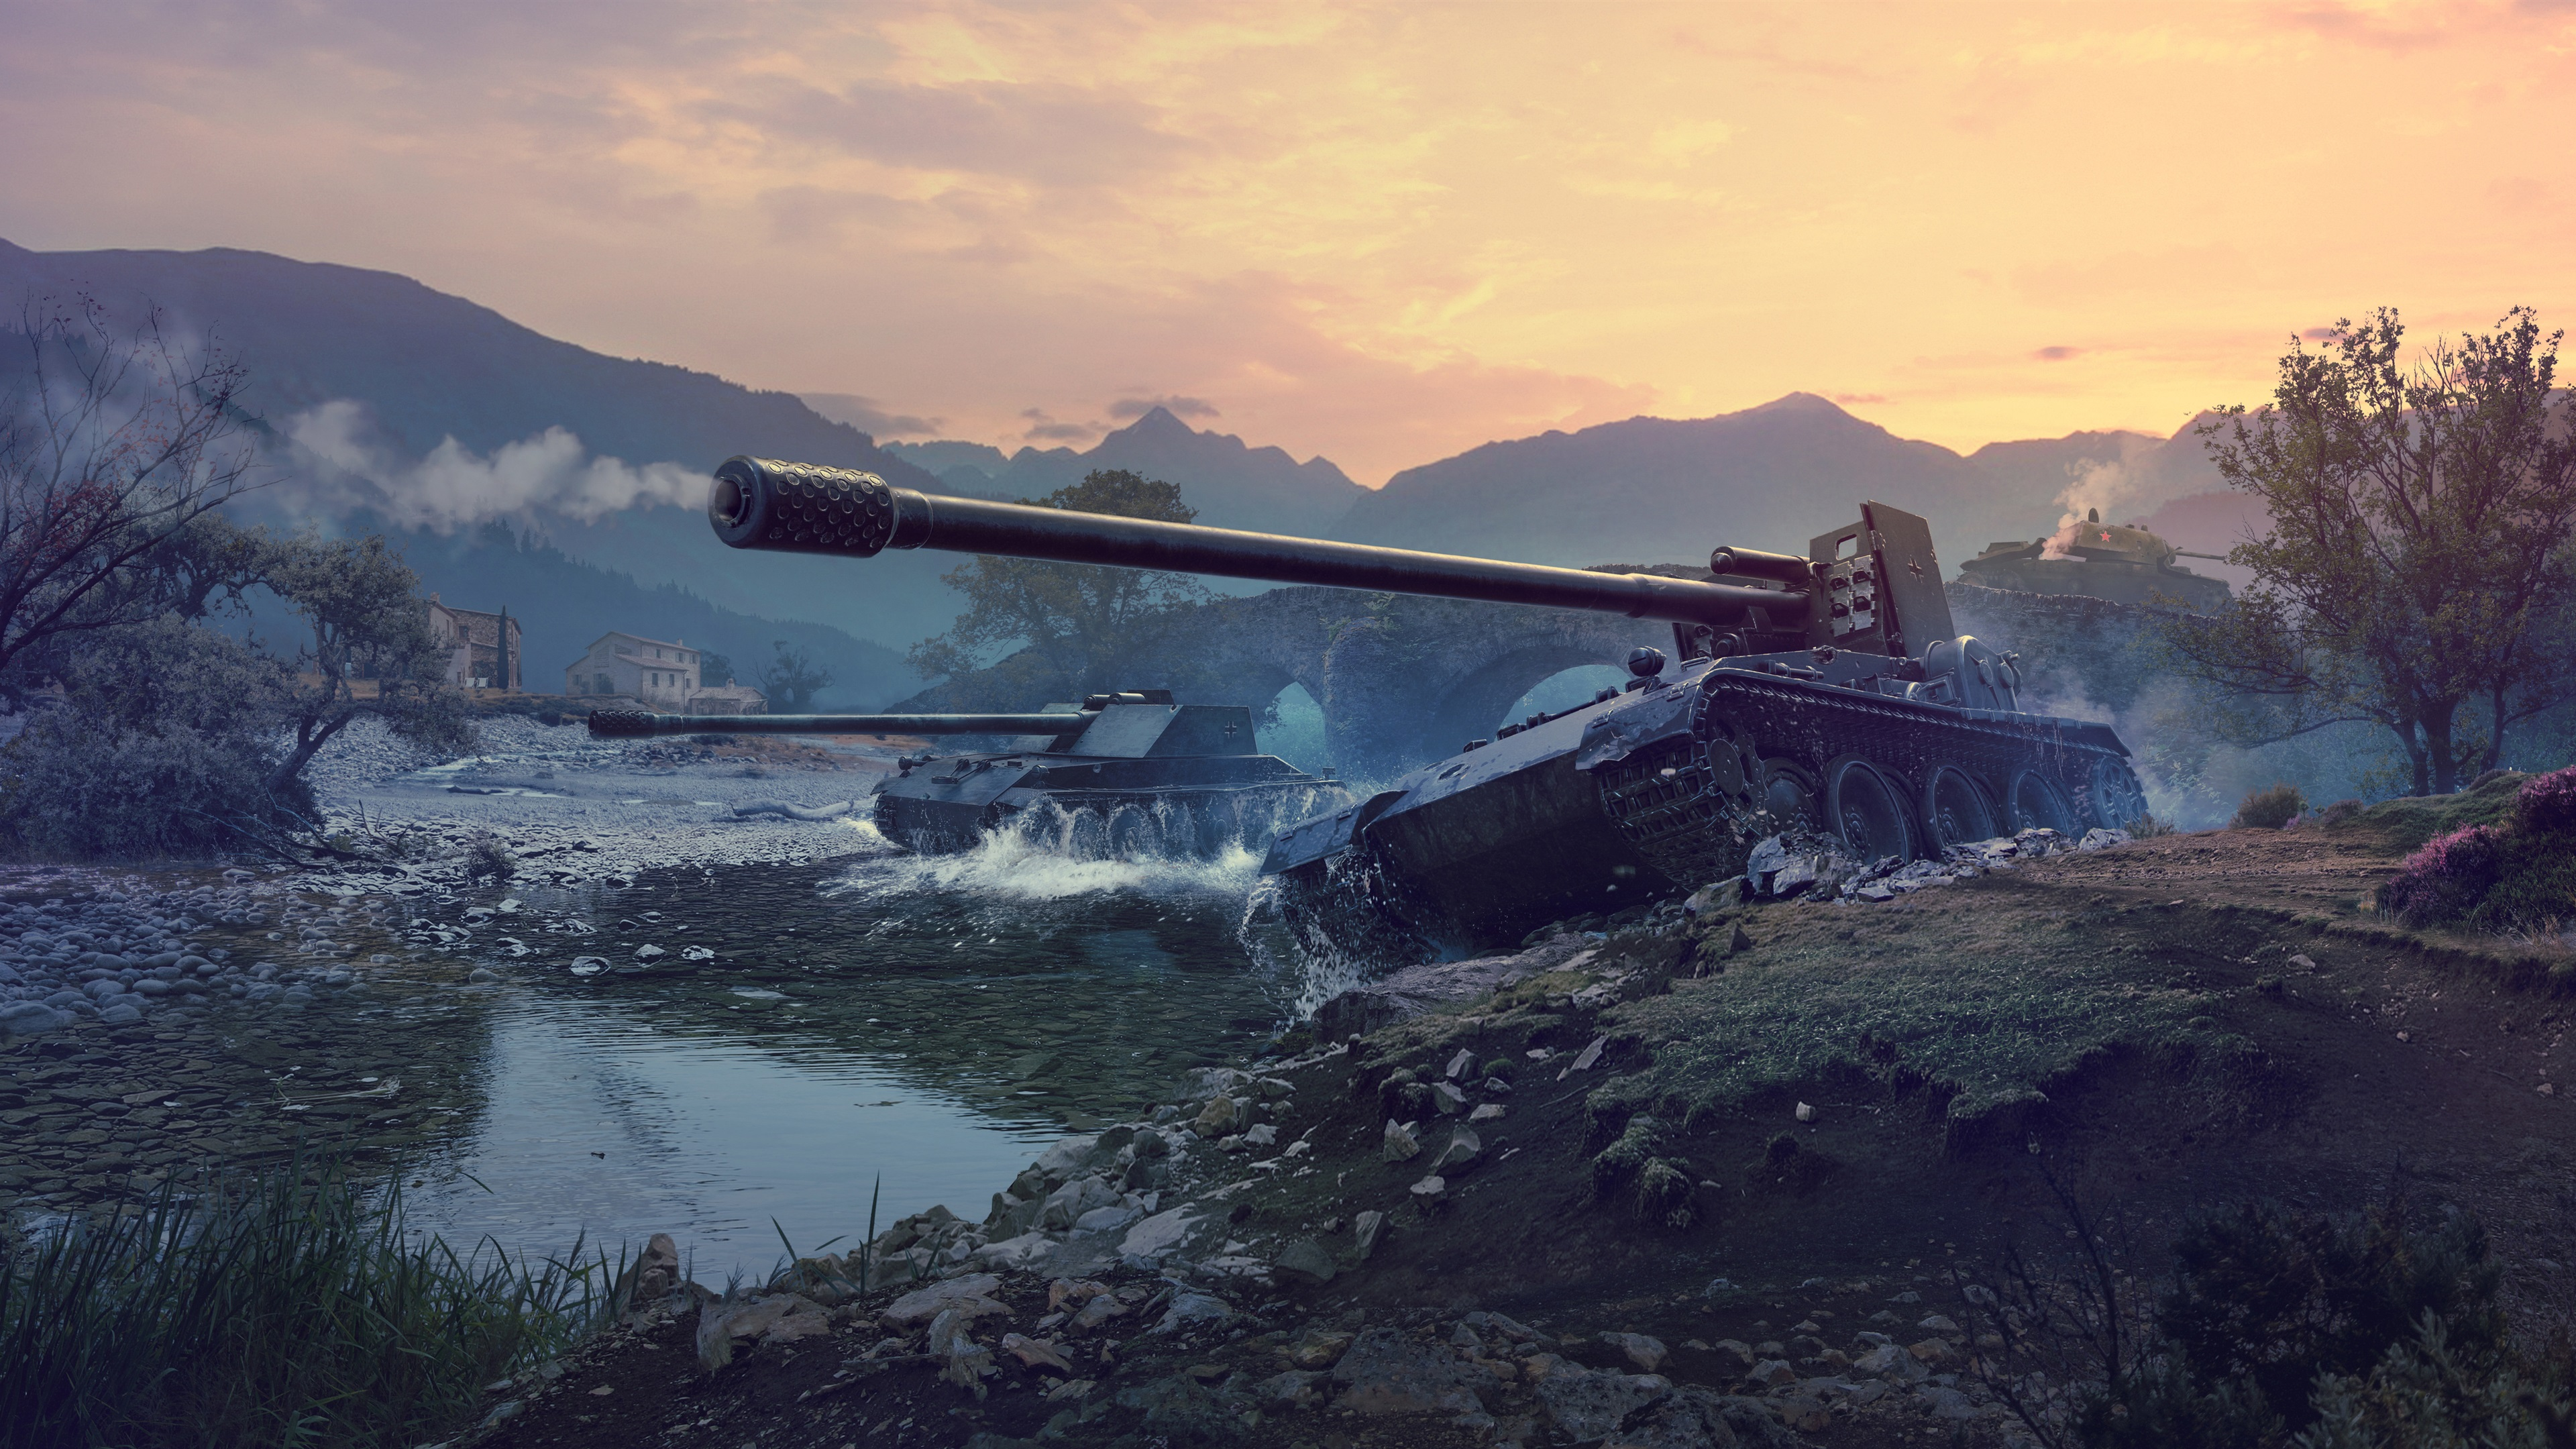 World Of Tanks Ps4 Games 1080x1920 Iphone 8766s Plus